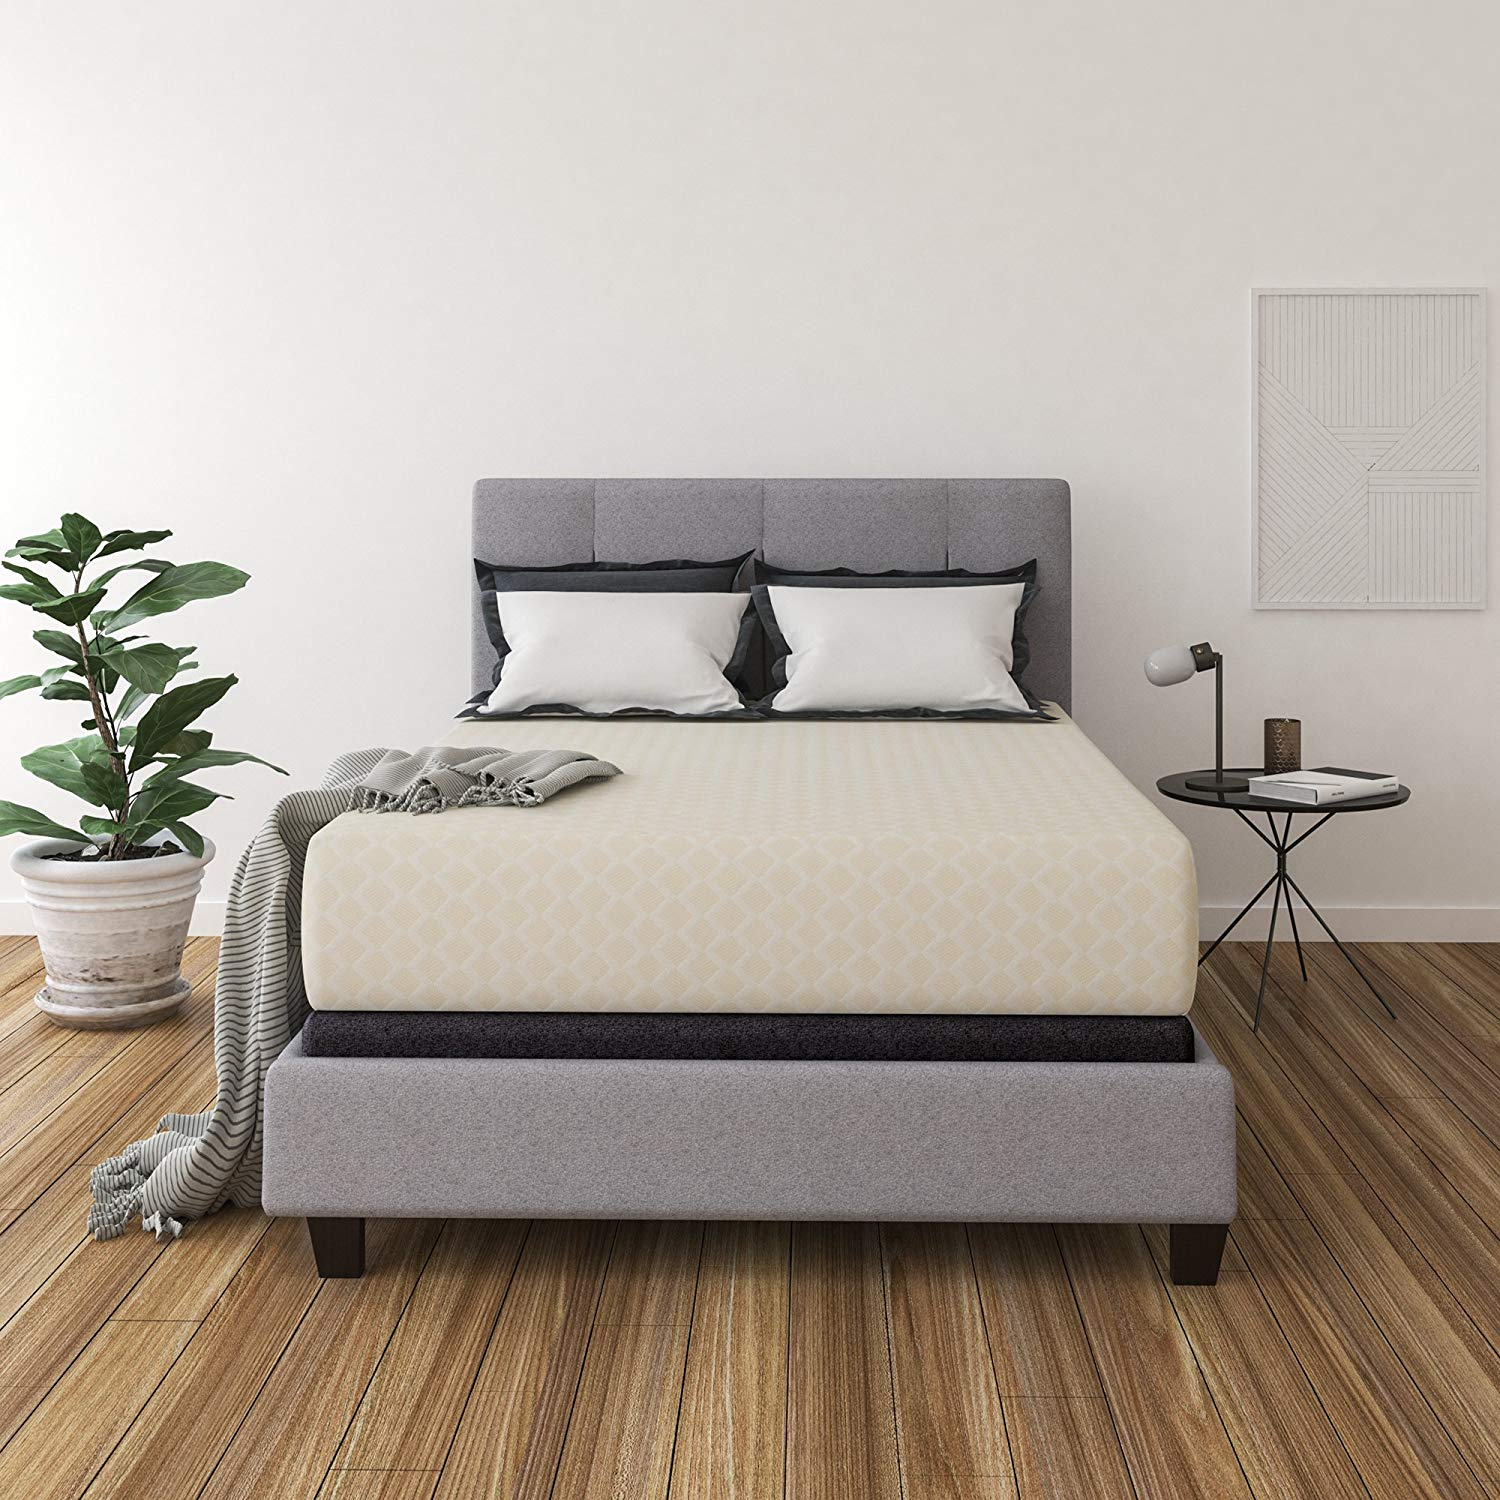 Ashley Furnitre Chime Express Mattress